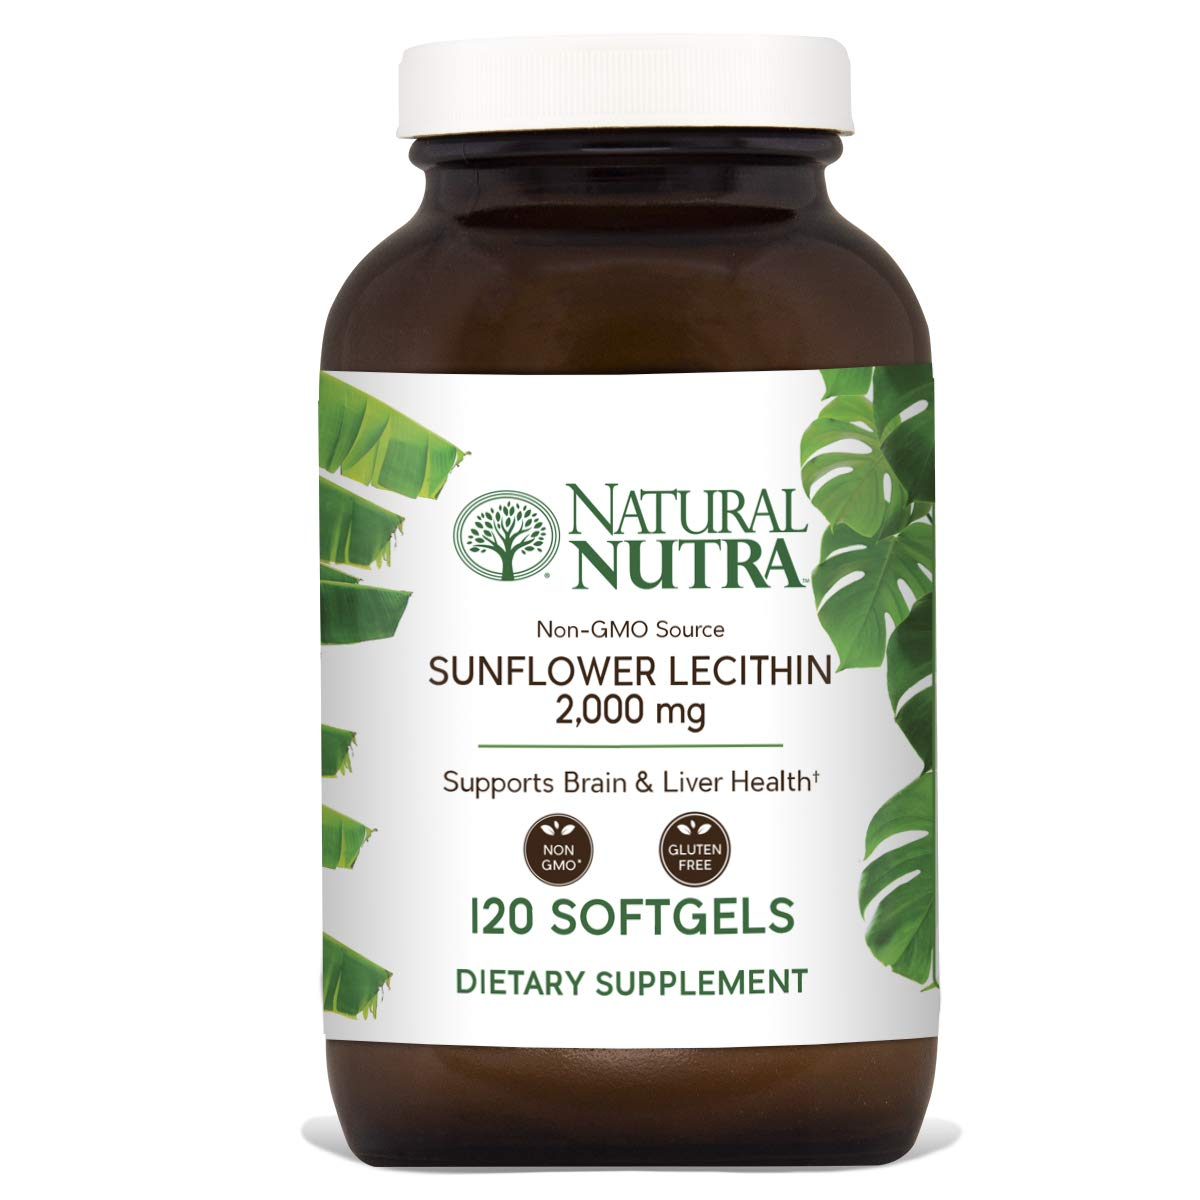 Natural Nutra Sunflower Lecithin 2000 mg, Phosphatidyl Choline, Non-GMO, Soy Free, Gluten Free, Premium Quality, Recyclable Glass Bottles, 120 Softgels by Natural Nutra